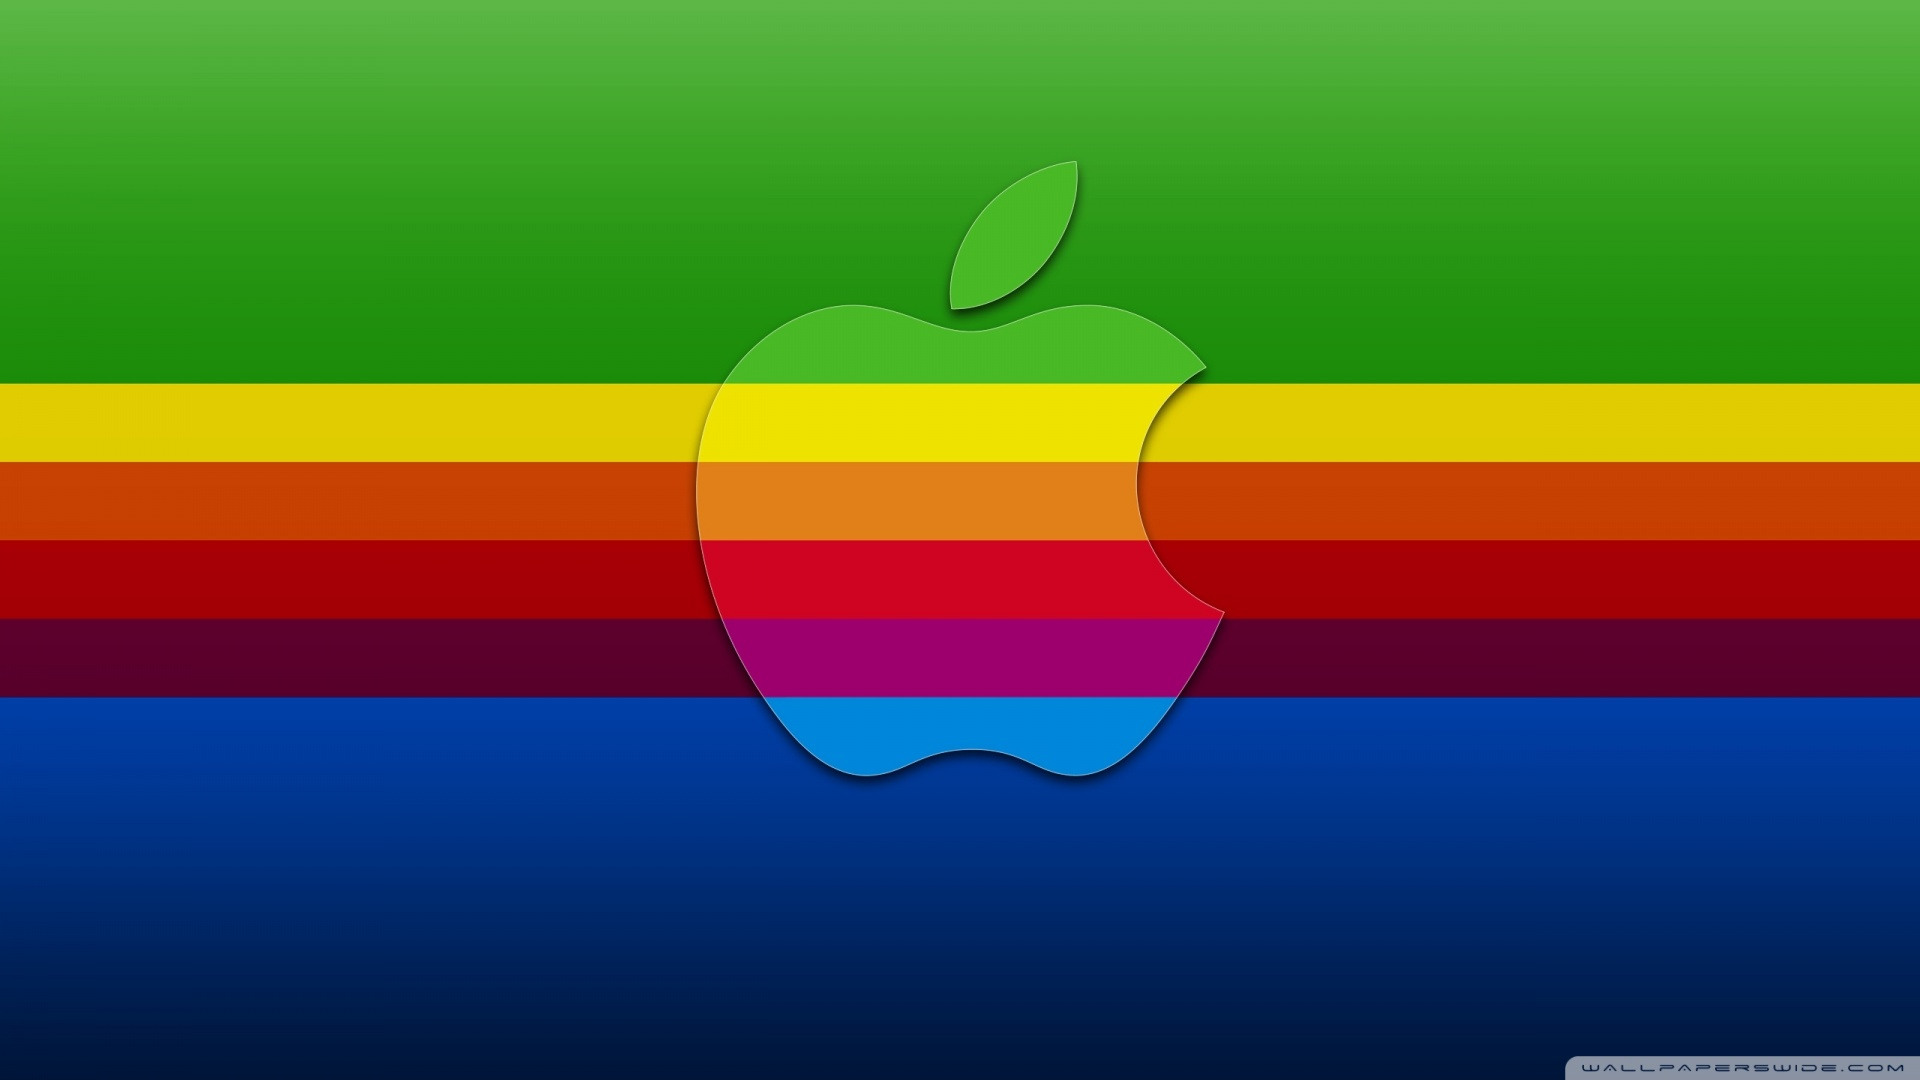 Colorful Apple Background 4K HD Desktop Wallpaper For Ultra